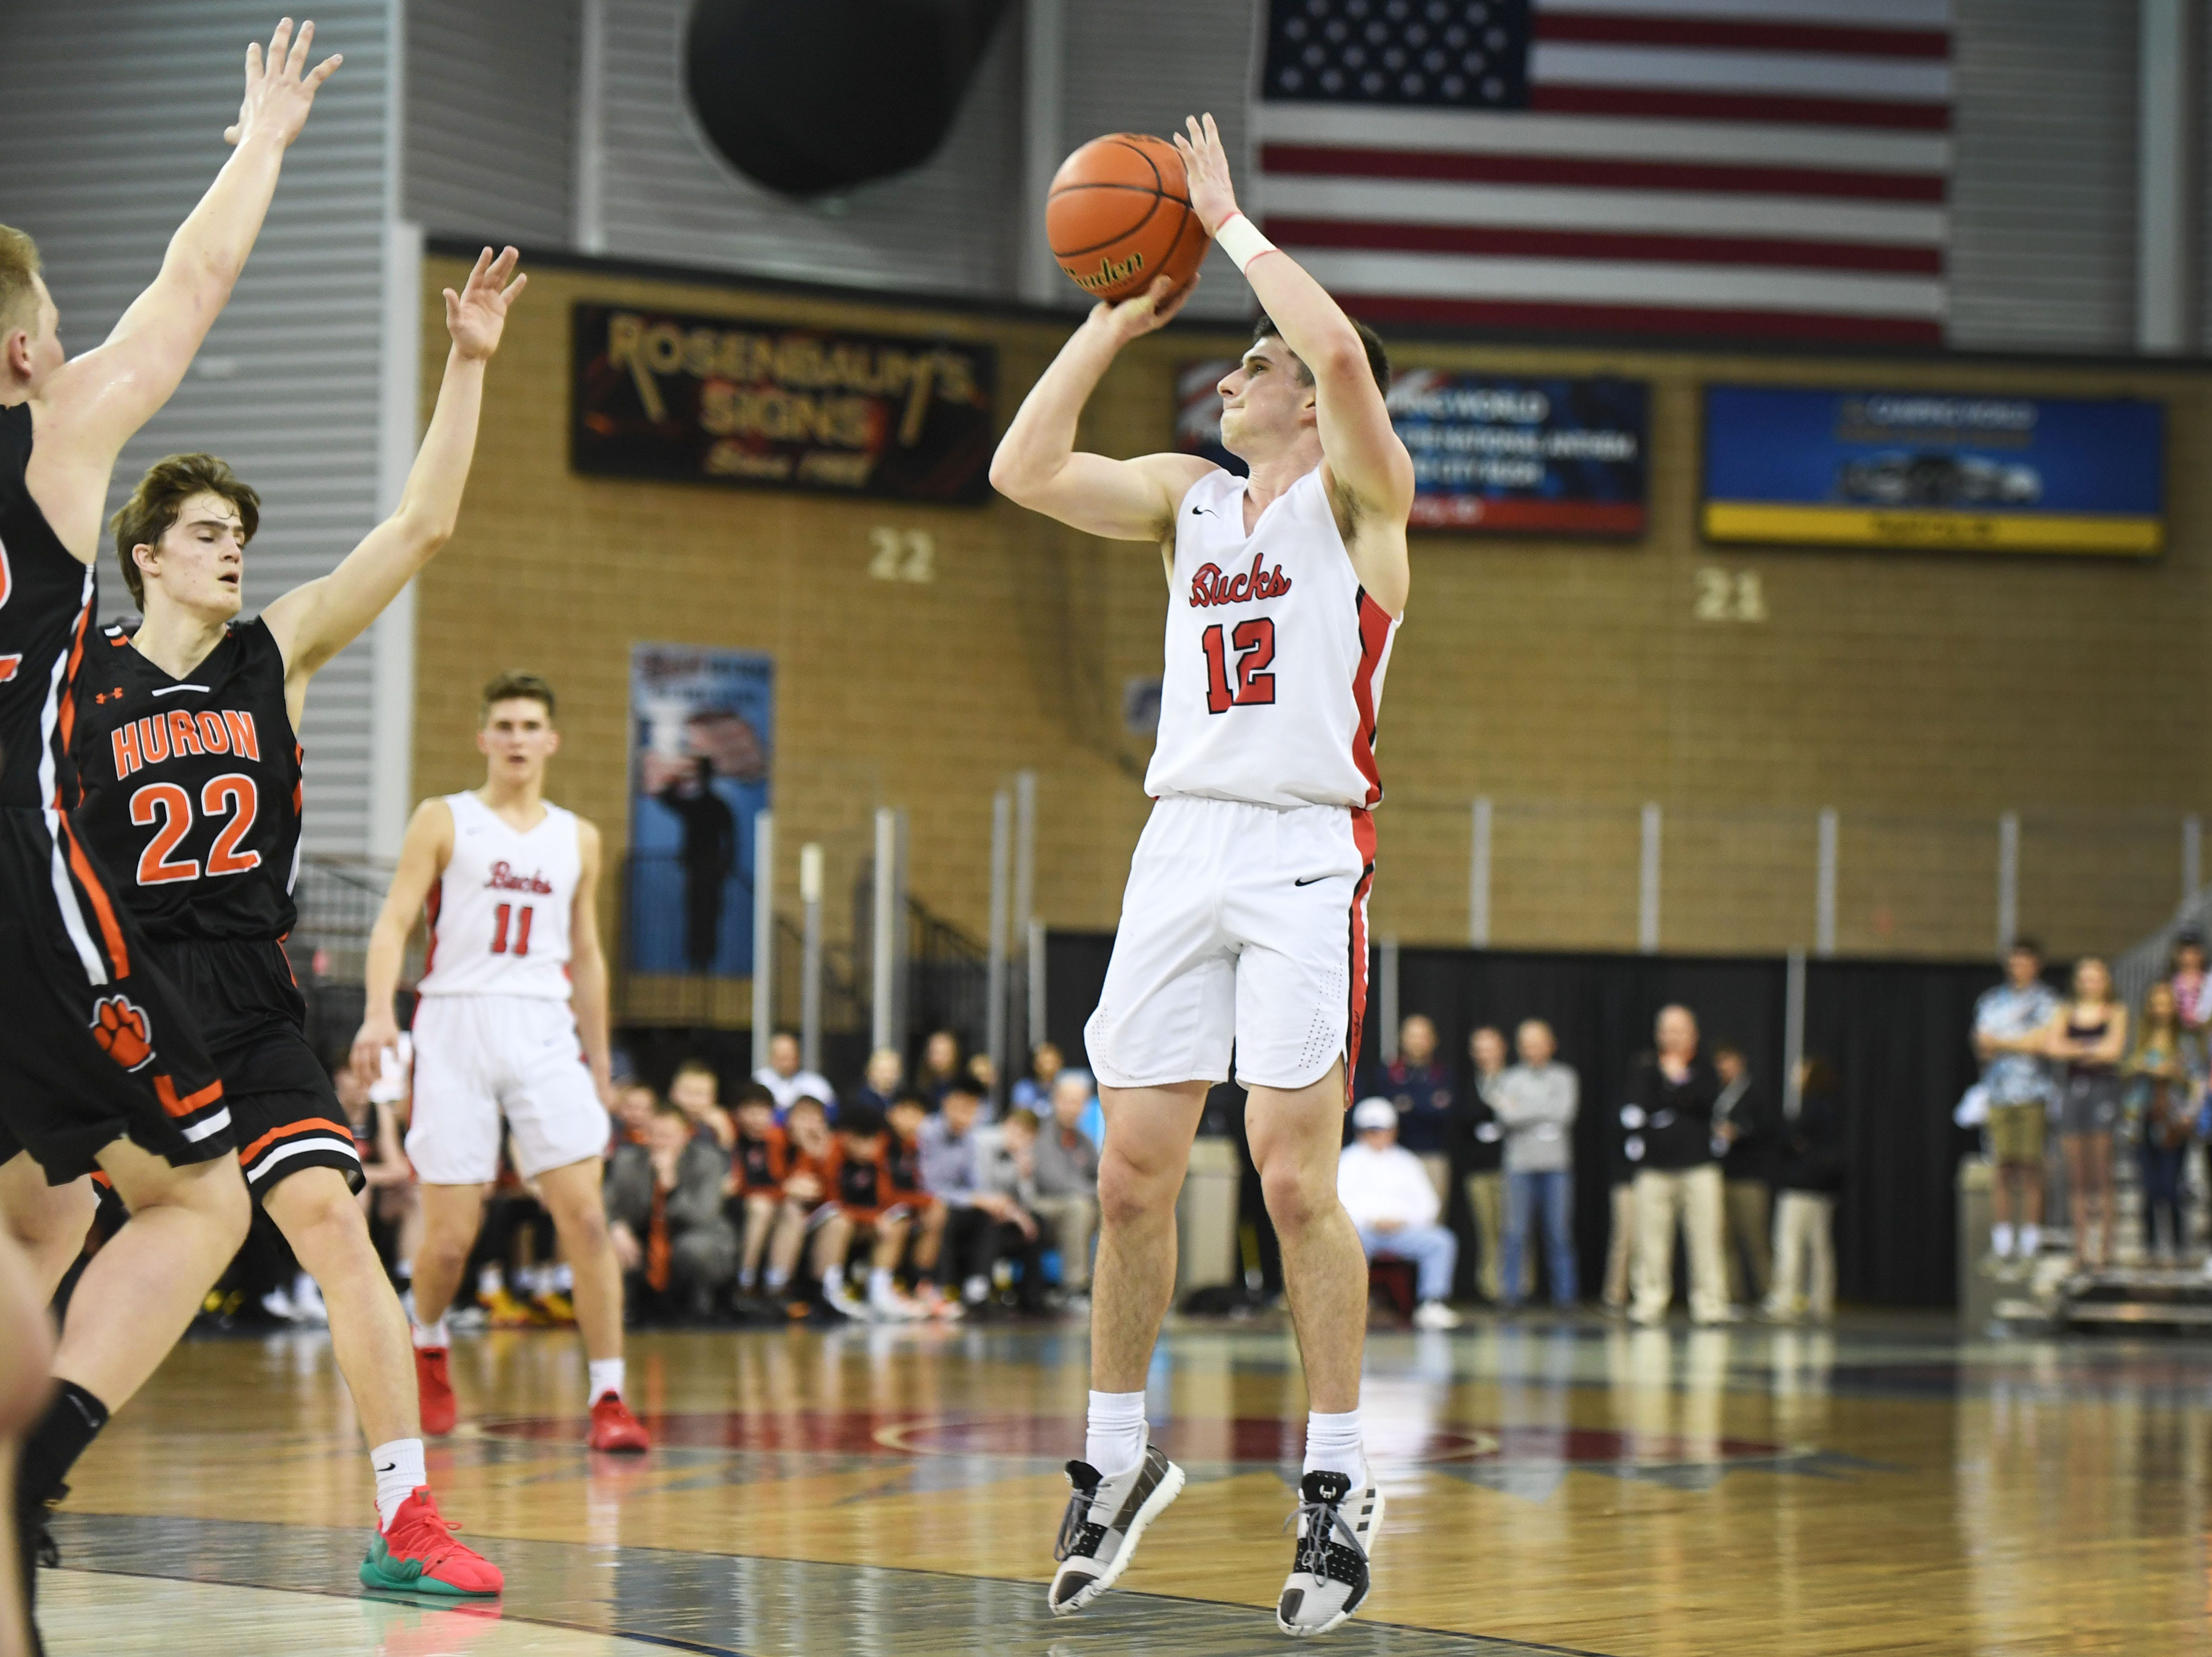 Yankton's Owen Feser takes a shot against Huron in the Class AA quarterfinals Thursday, March 14, in Rapid City.